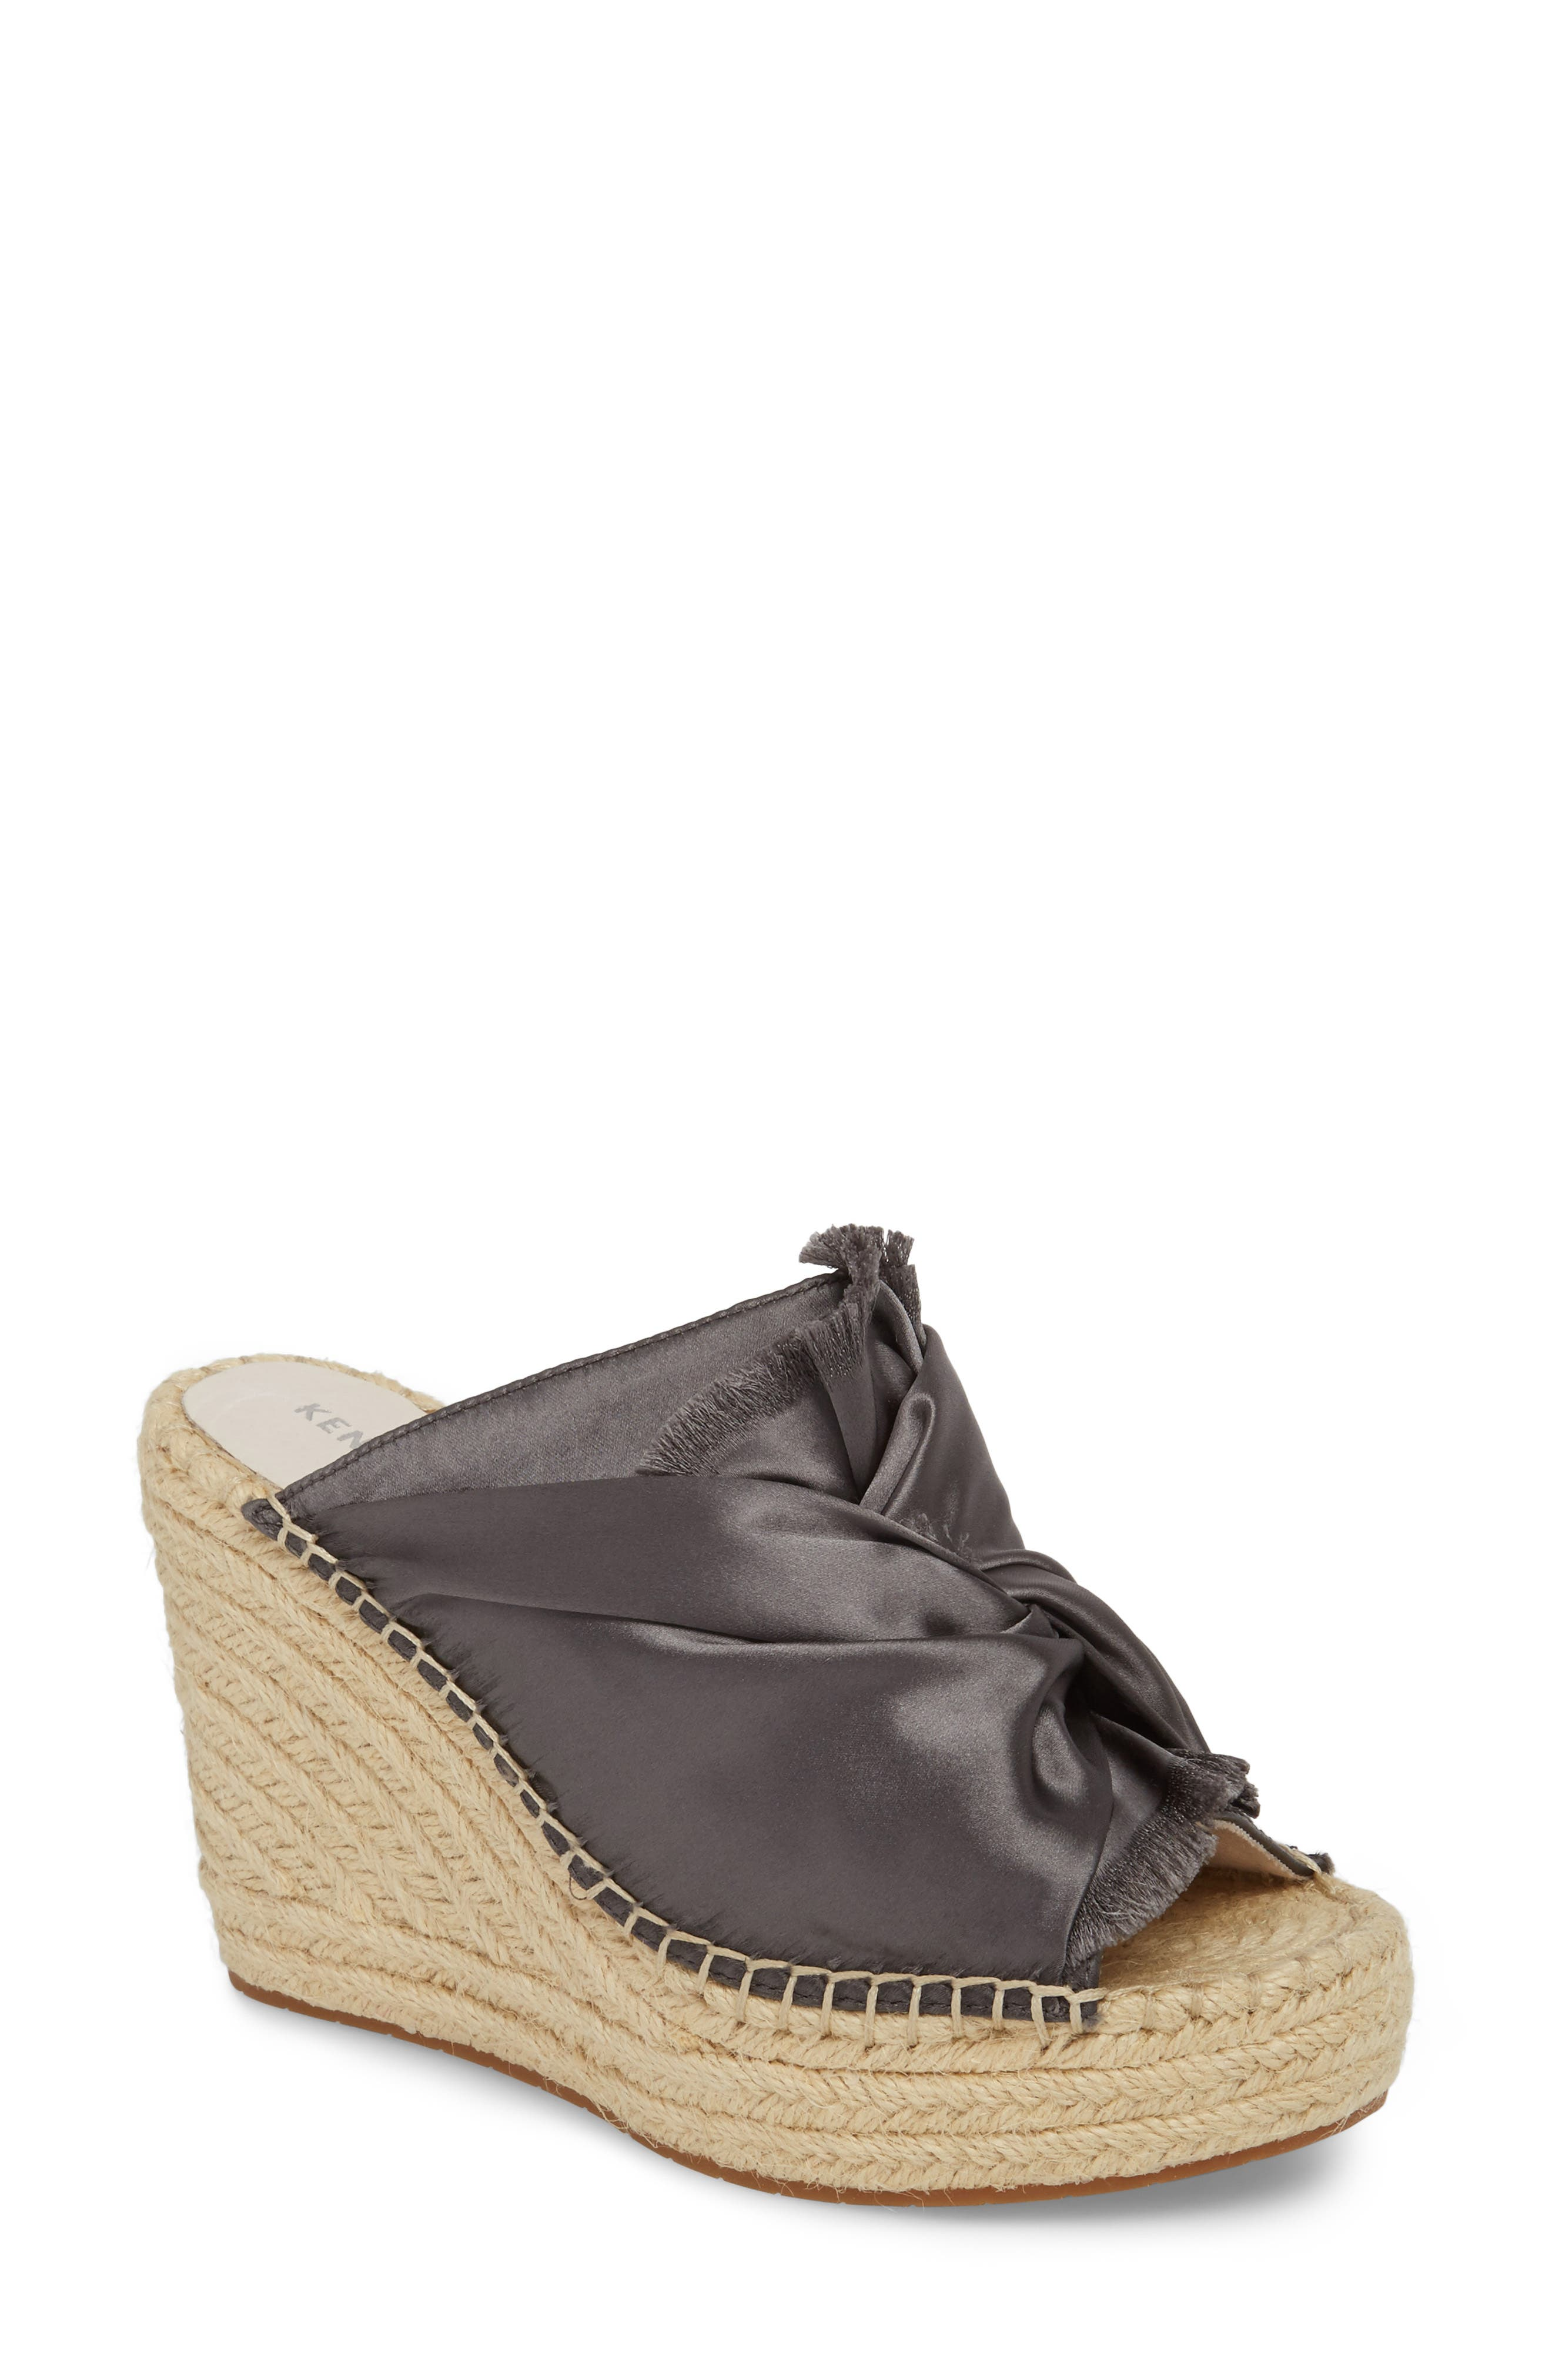 Odele Espadrille Wedge,                             Main thumbnail 1, color,                             Charcoal Satin